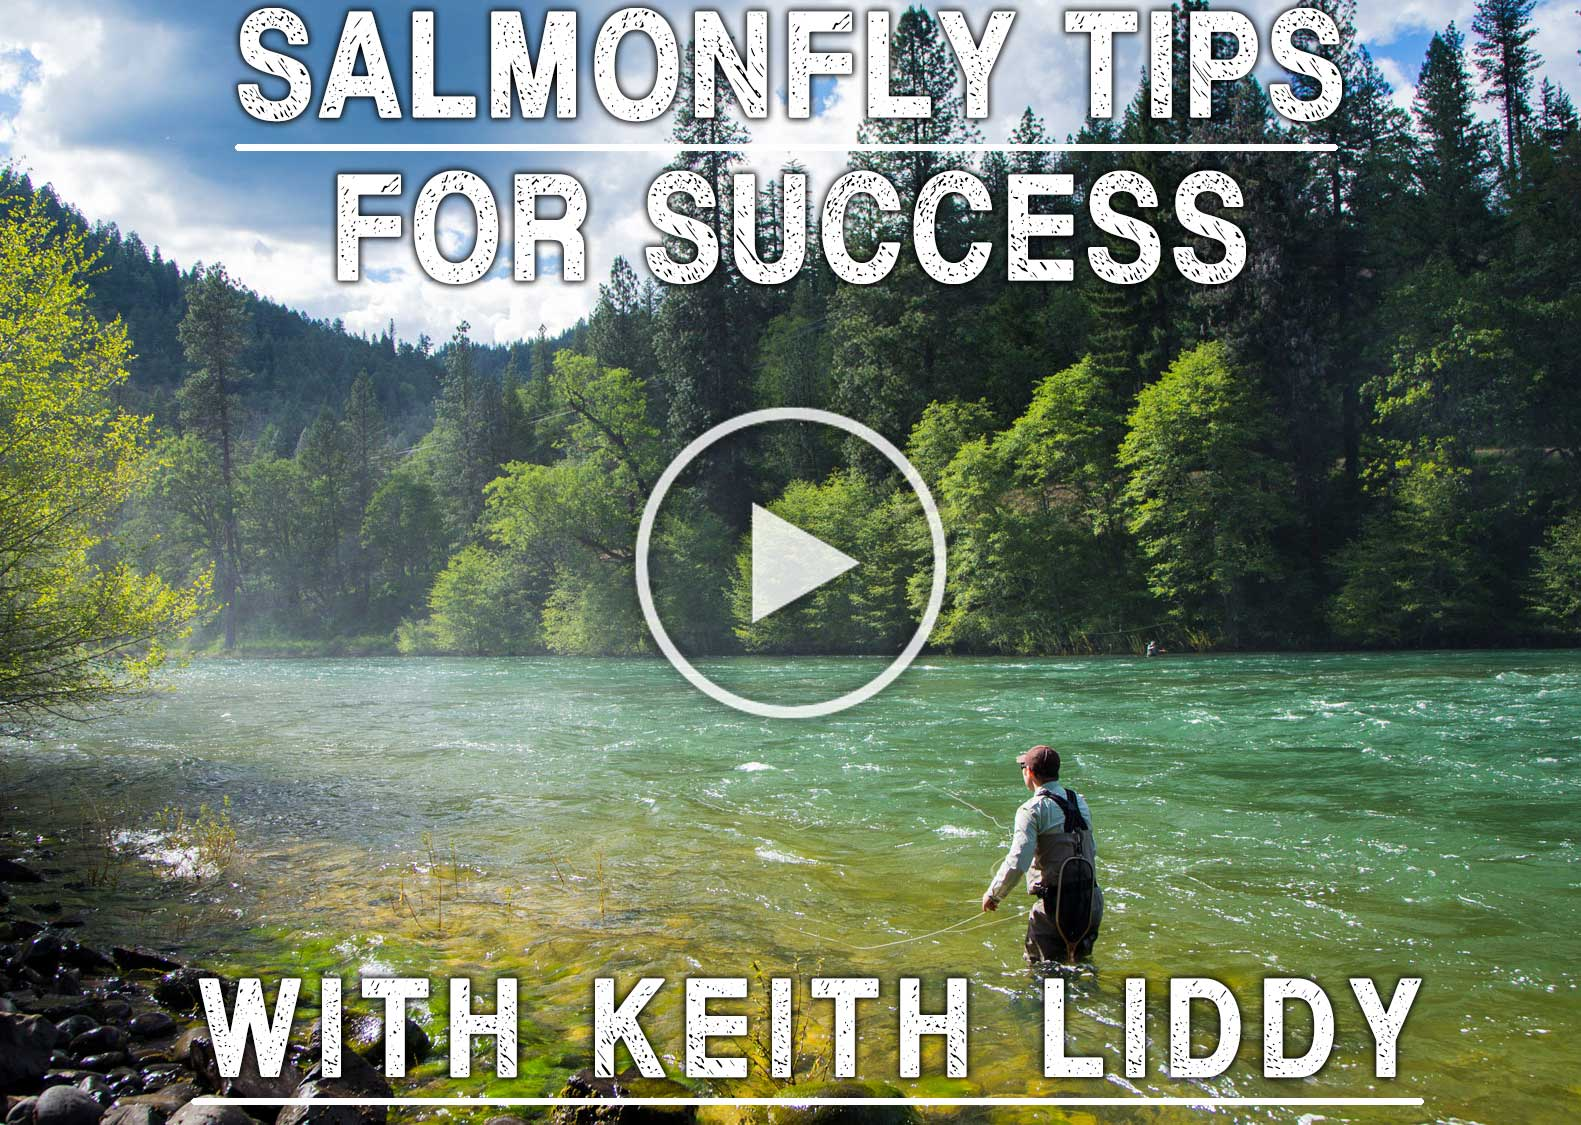 Salmonfly Tips for Success